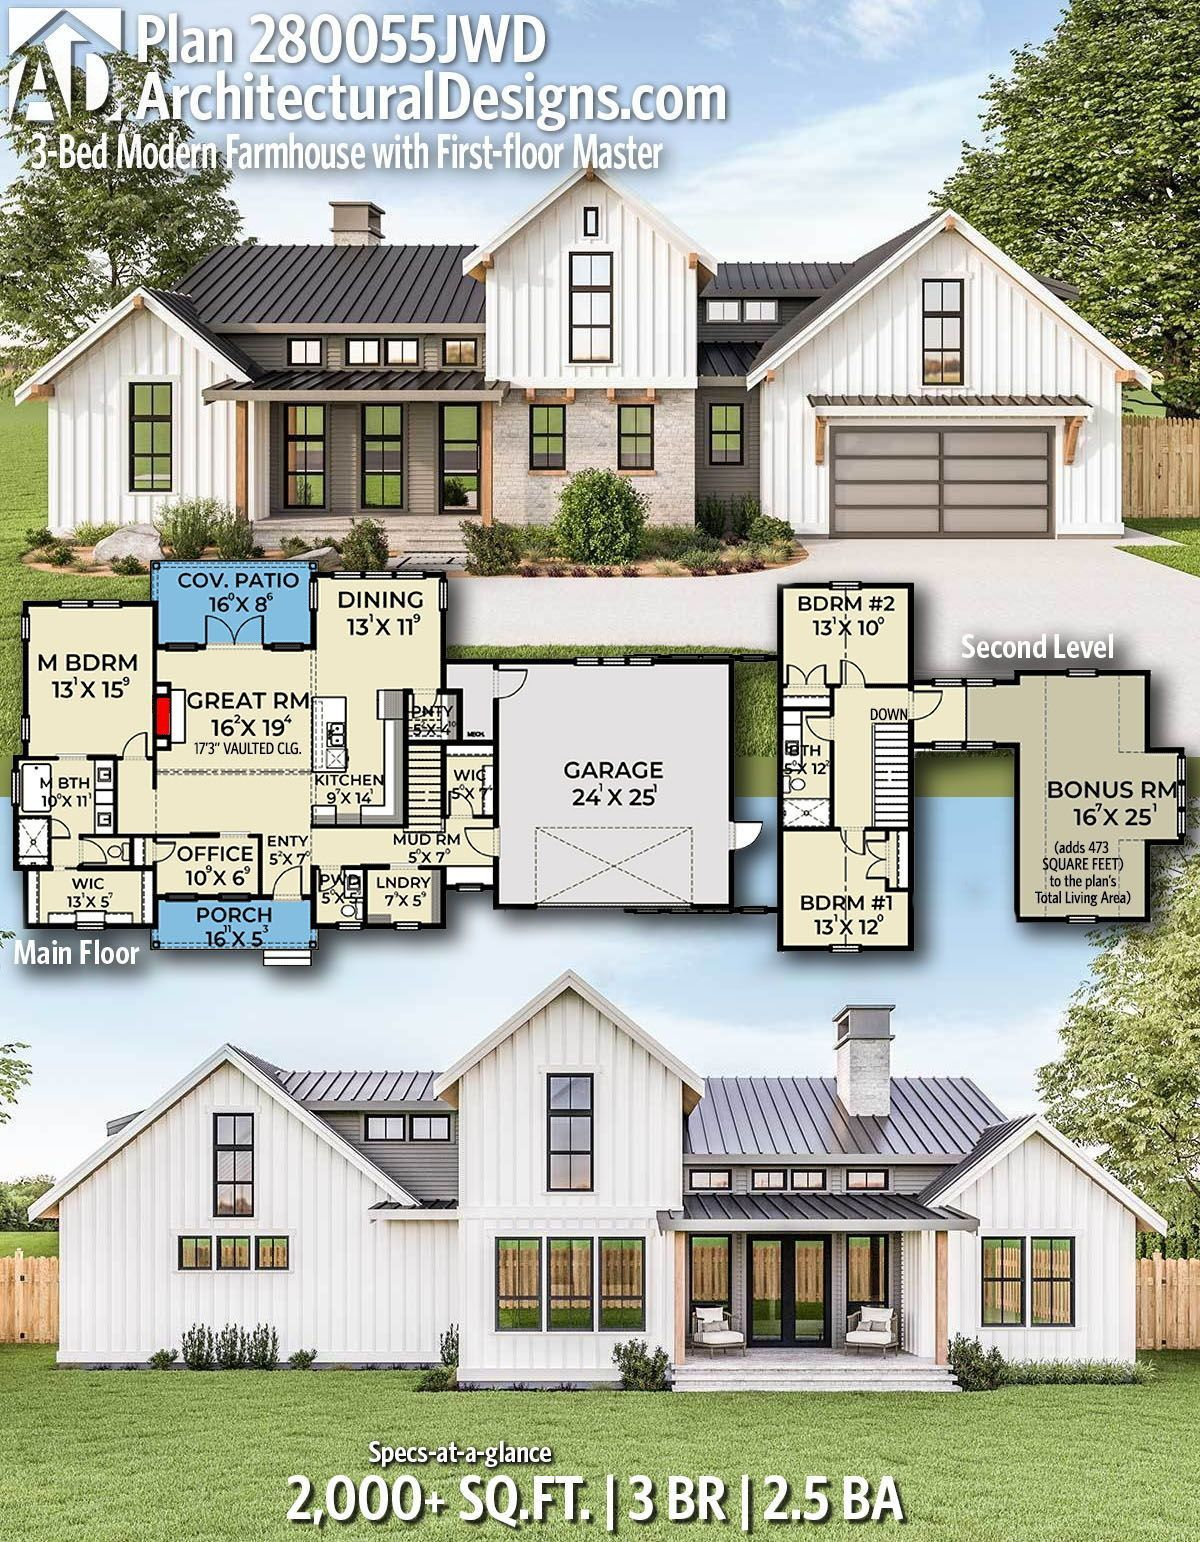 Luxury Farmhouse Plans One Story 2000 Sq Ft Plan Jwd 3 Bed Modern Farmhouse With First Floor In 2020 House Plans Farmhouse Modern Farmhouse Plans Farmhouse Floor Plans